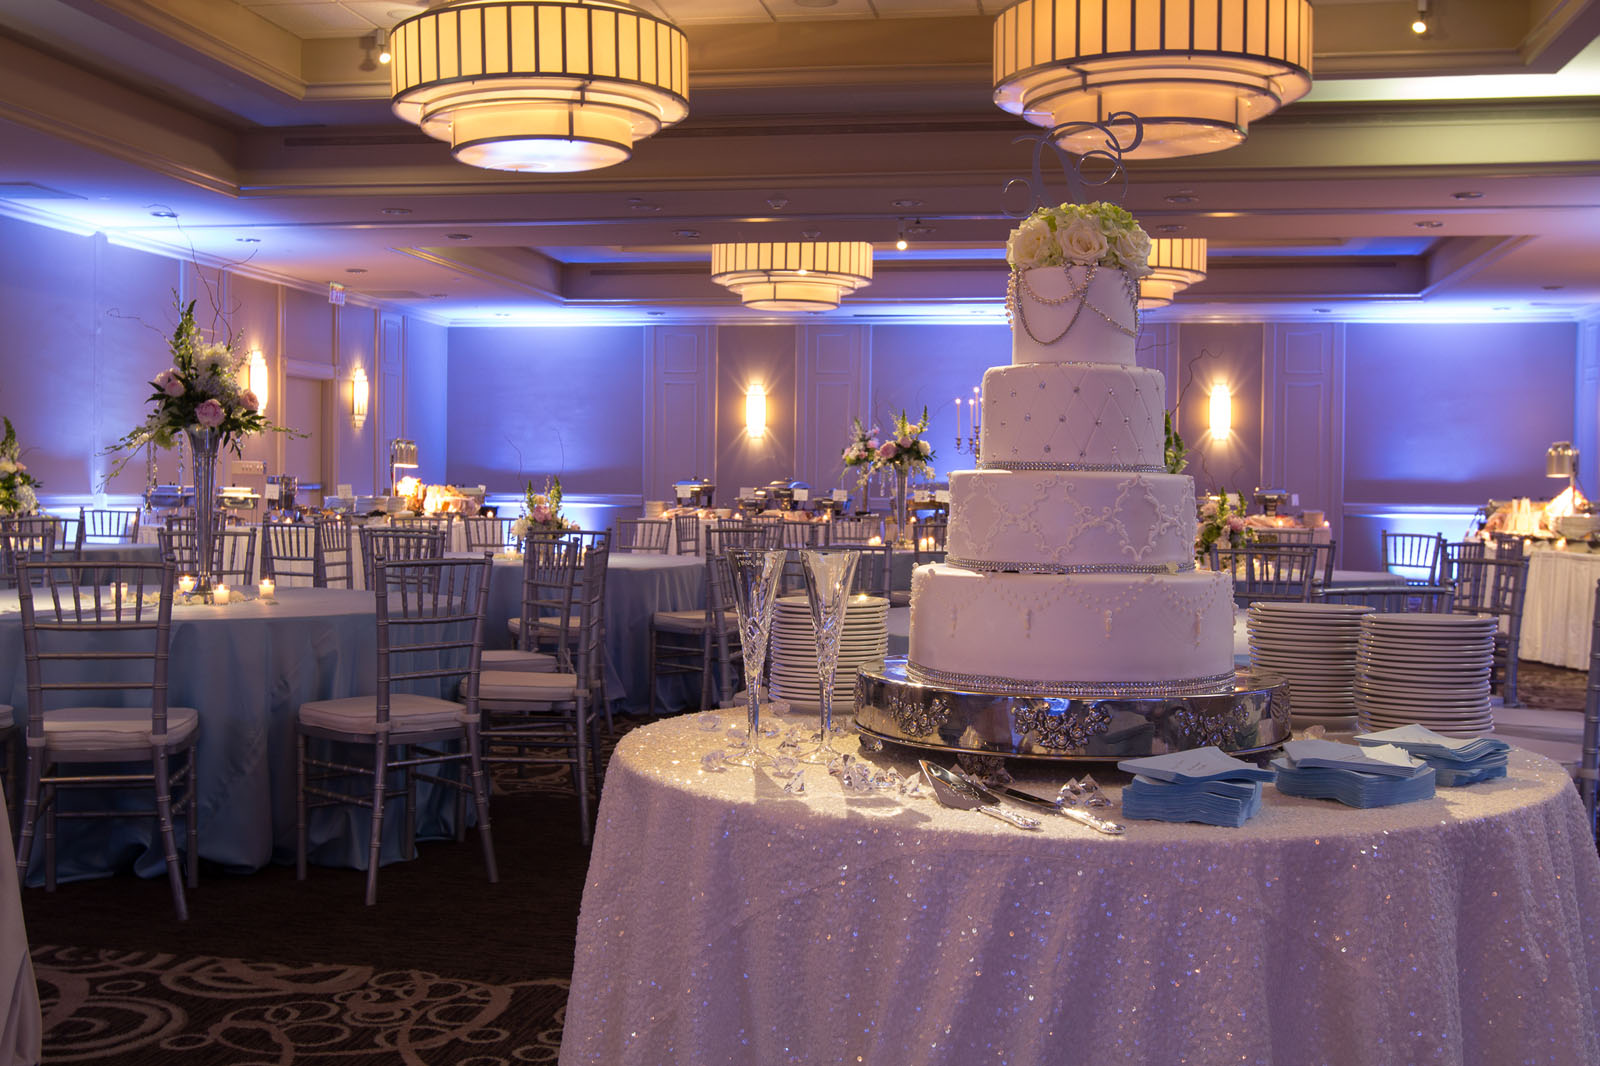 Catered wedding cake at Hotel Capstone